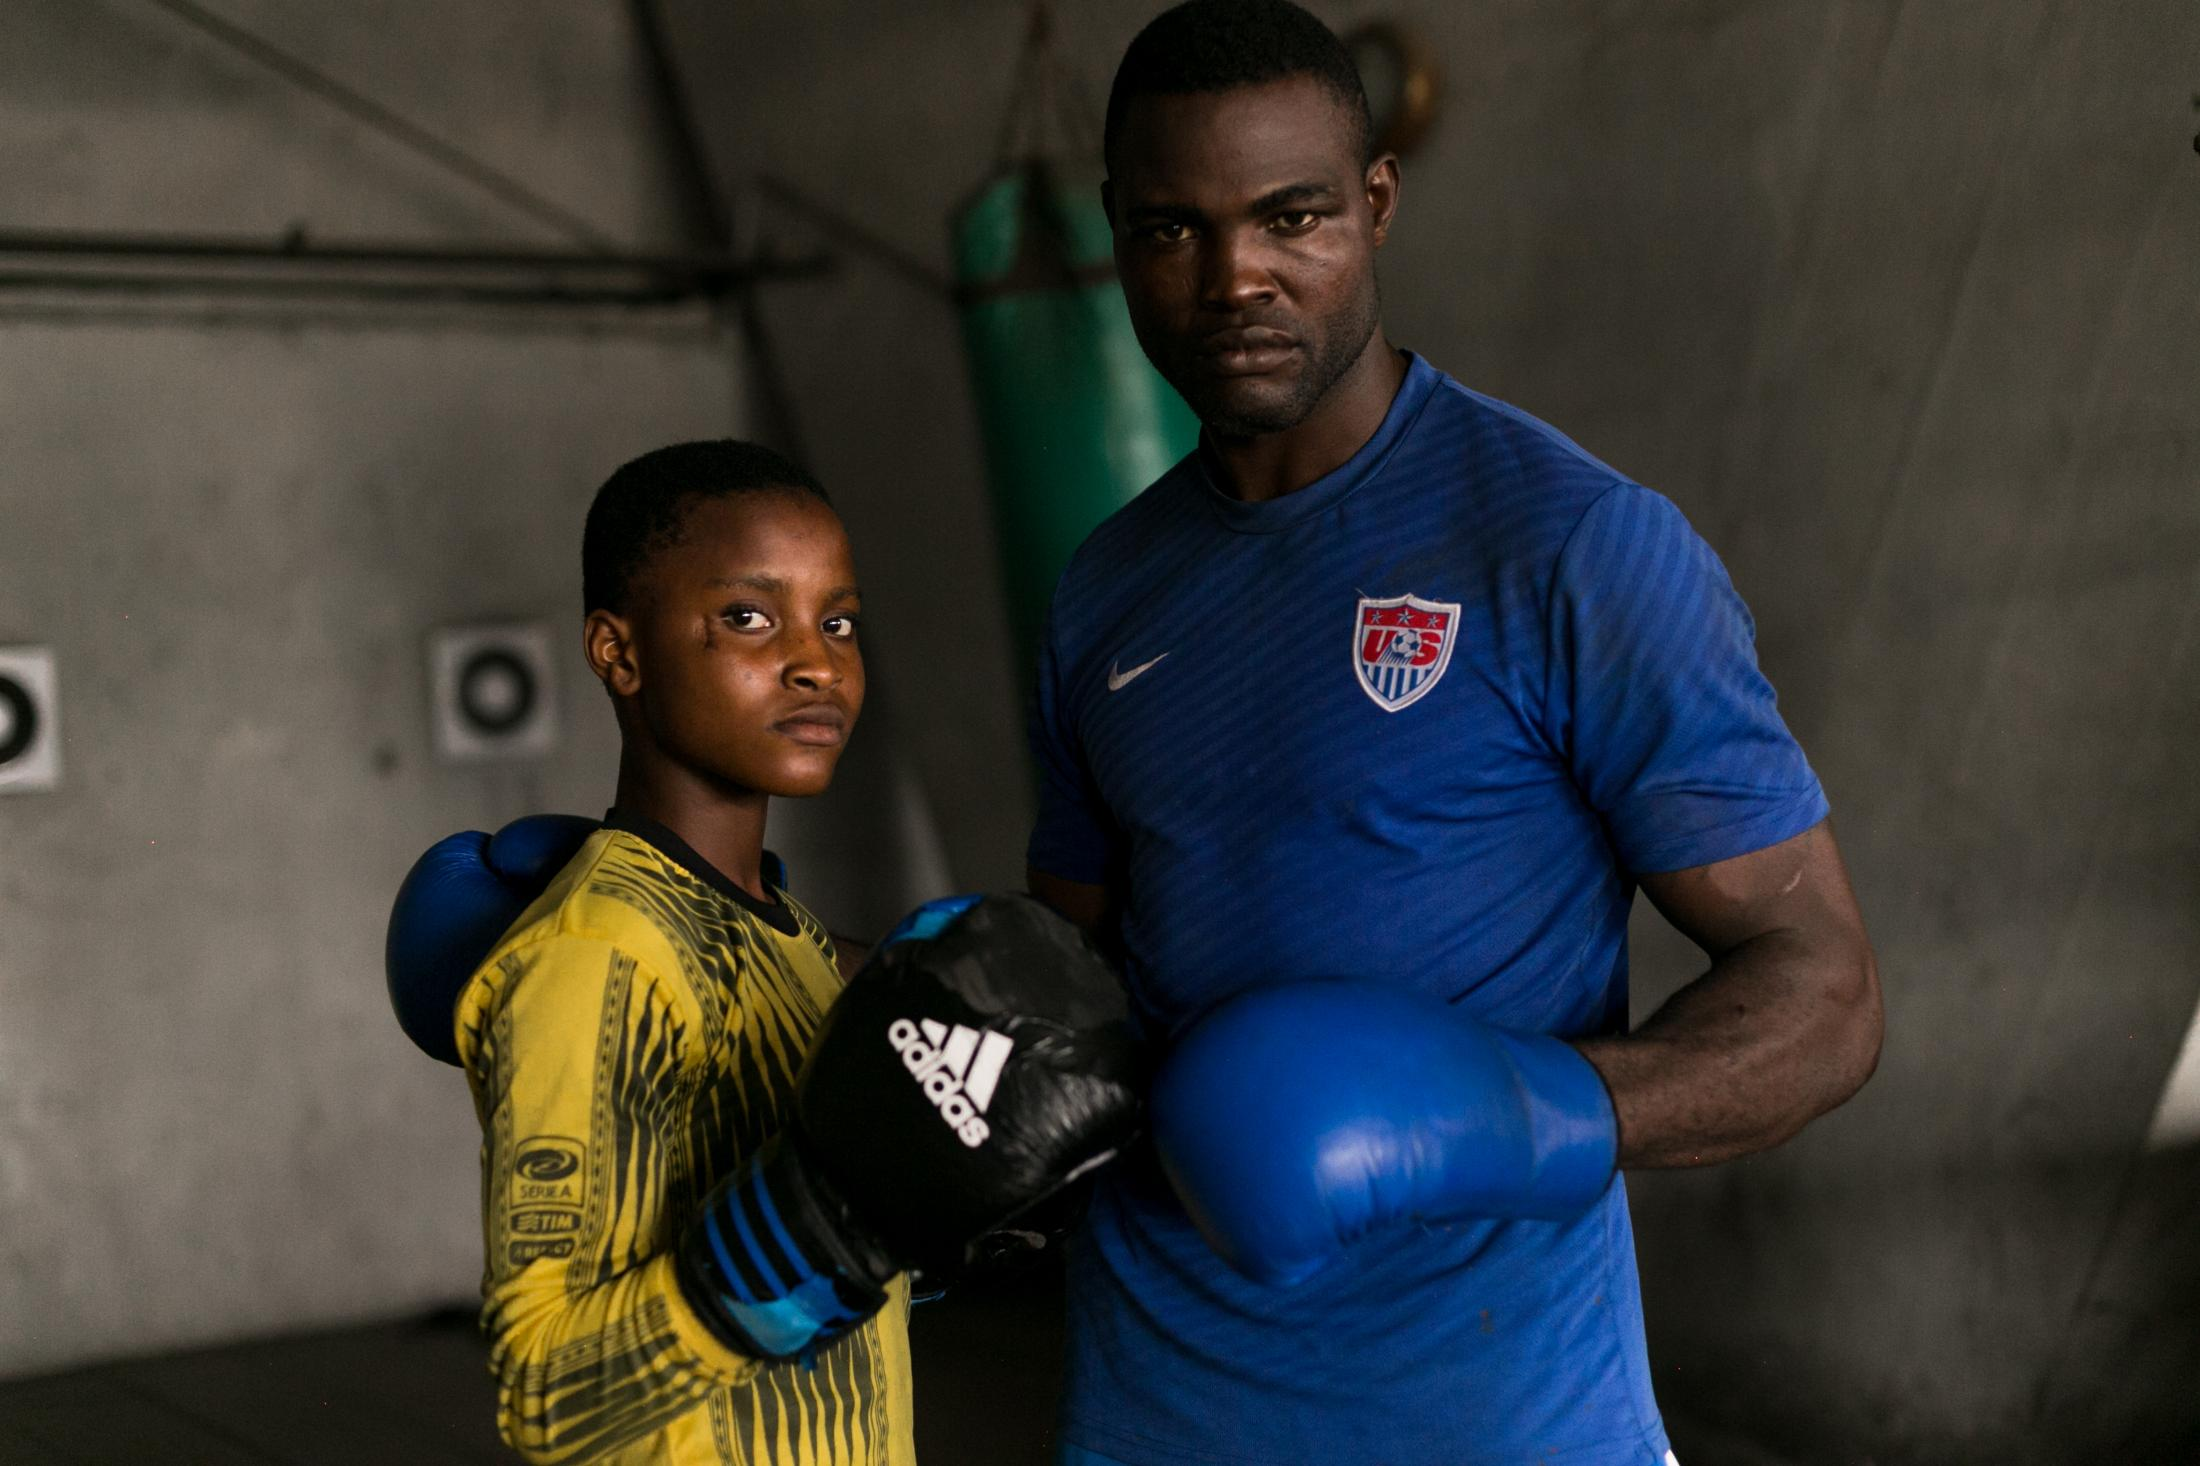 11July 2019: Fatai brings his daughter Olamide, 15. along with him to train so that she can learn to defend herself, Lagos, Nigeria